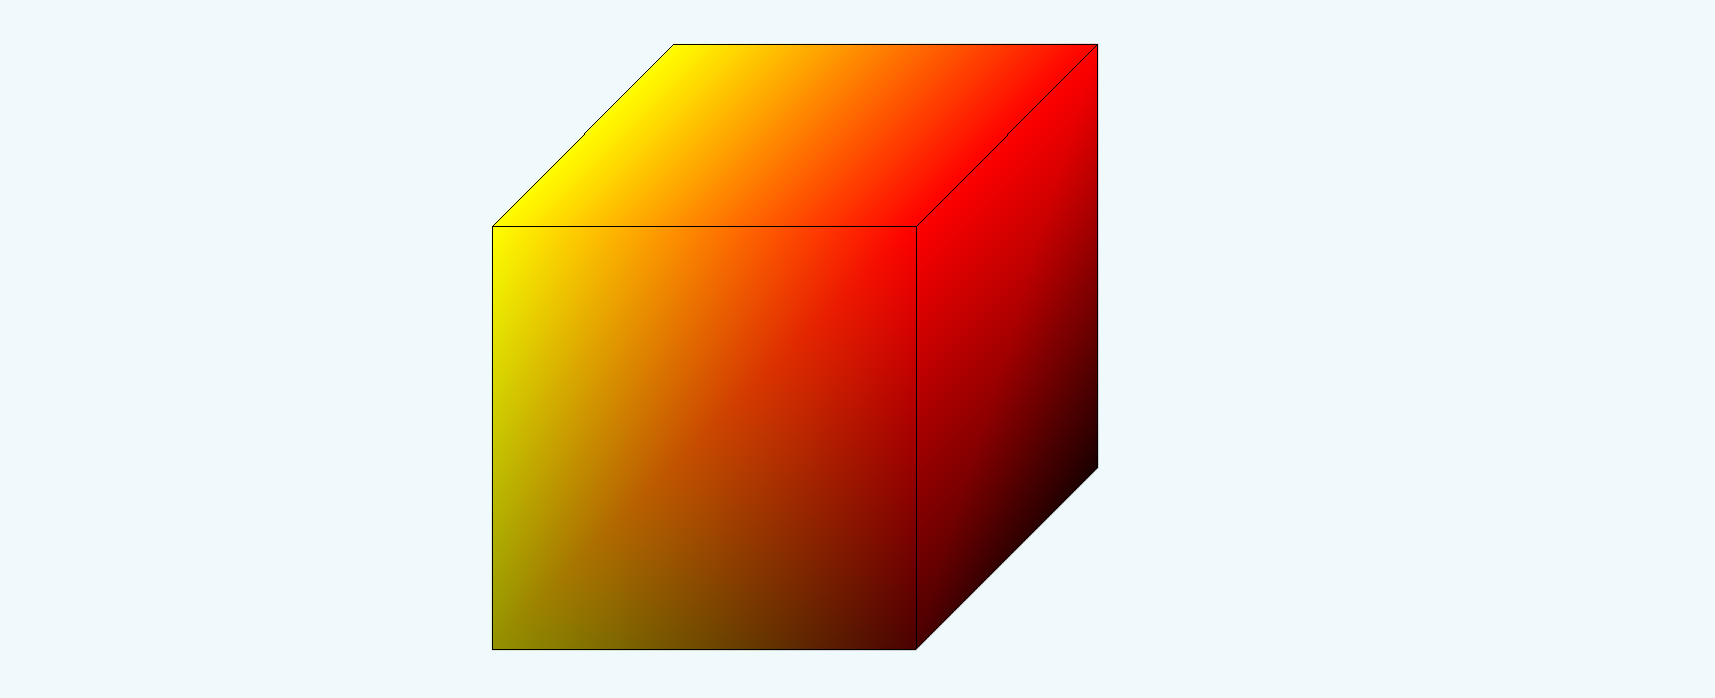 A cube that transitions from yellow to red smoothly left to right.